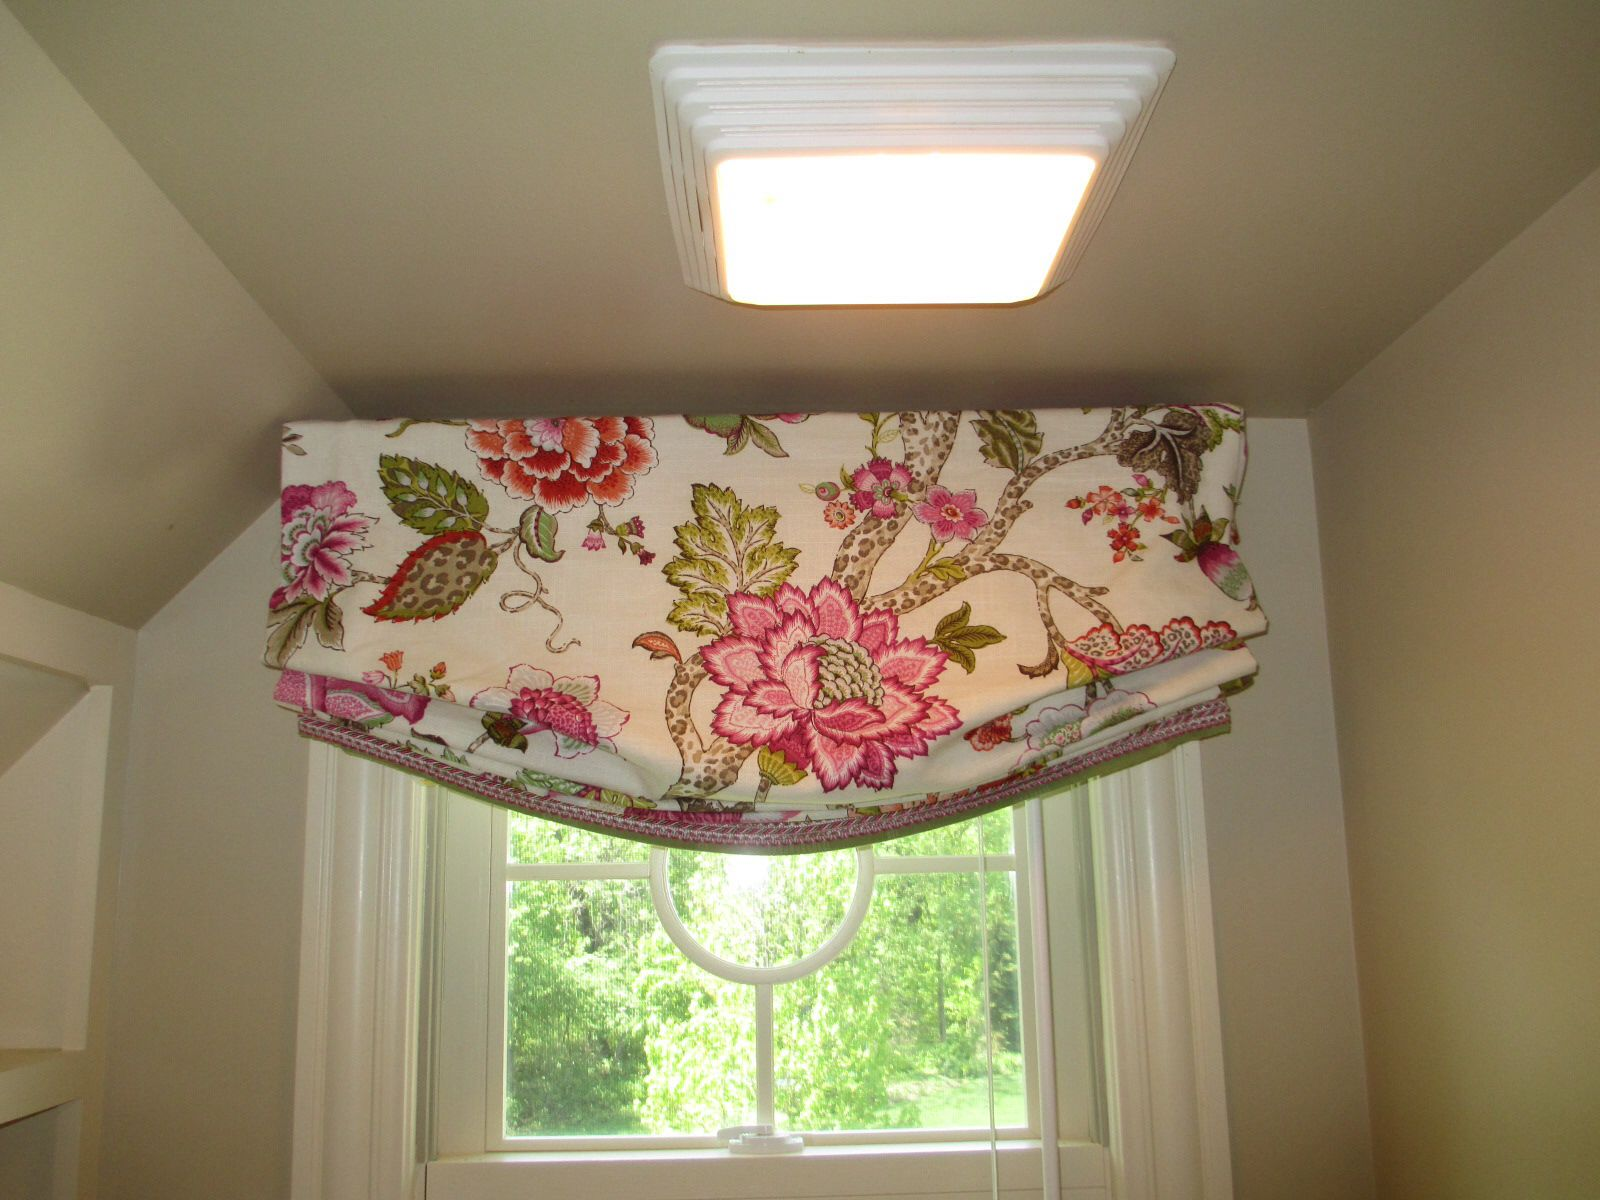 Faux Relaxed Roman Shade For Barrett S Room The Rh